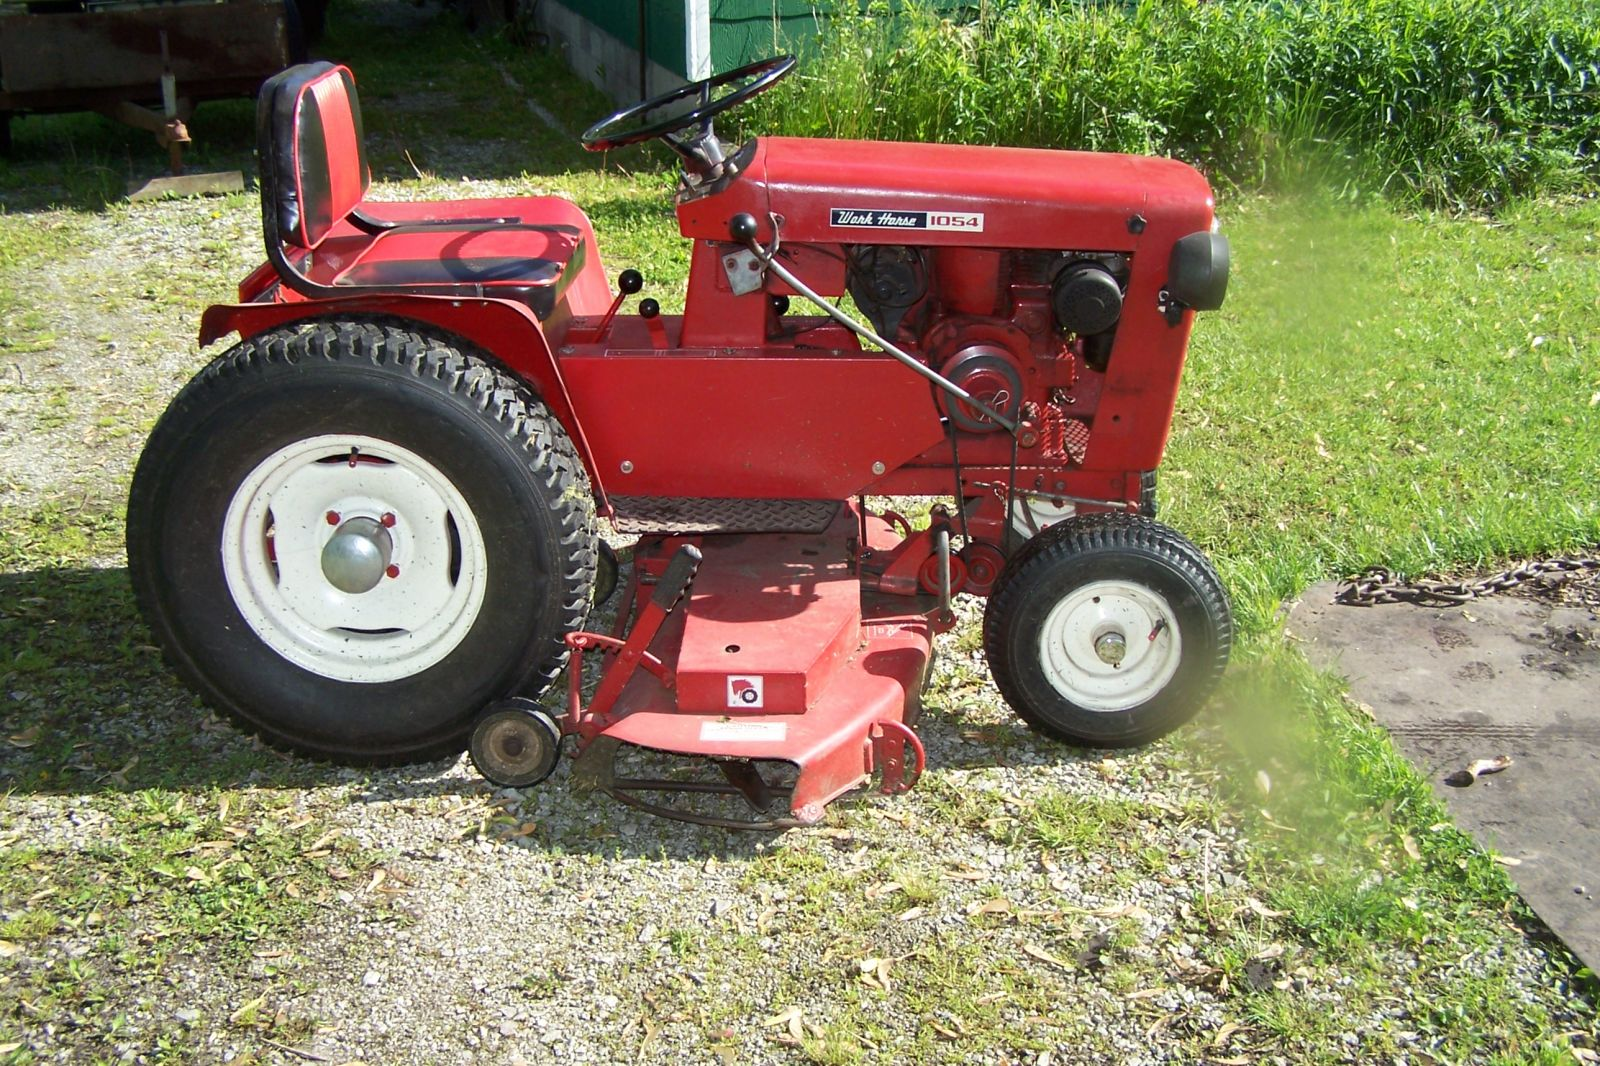 1964 Wheel Horse 1054 Tractor with 48 inch Mower Deck